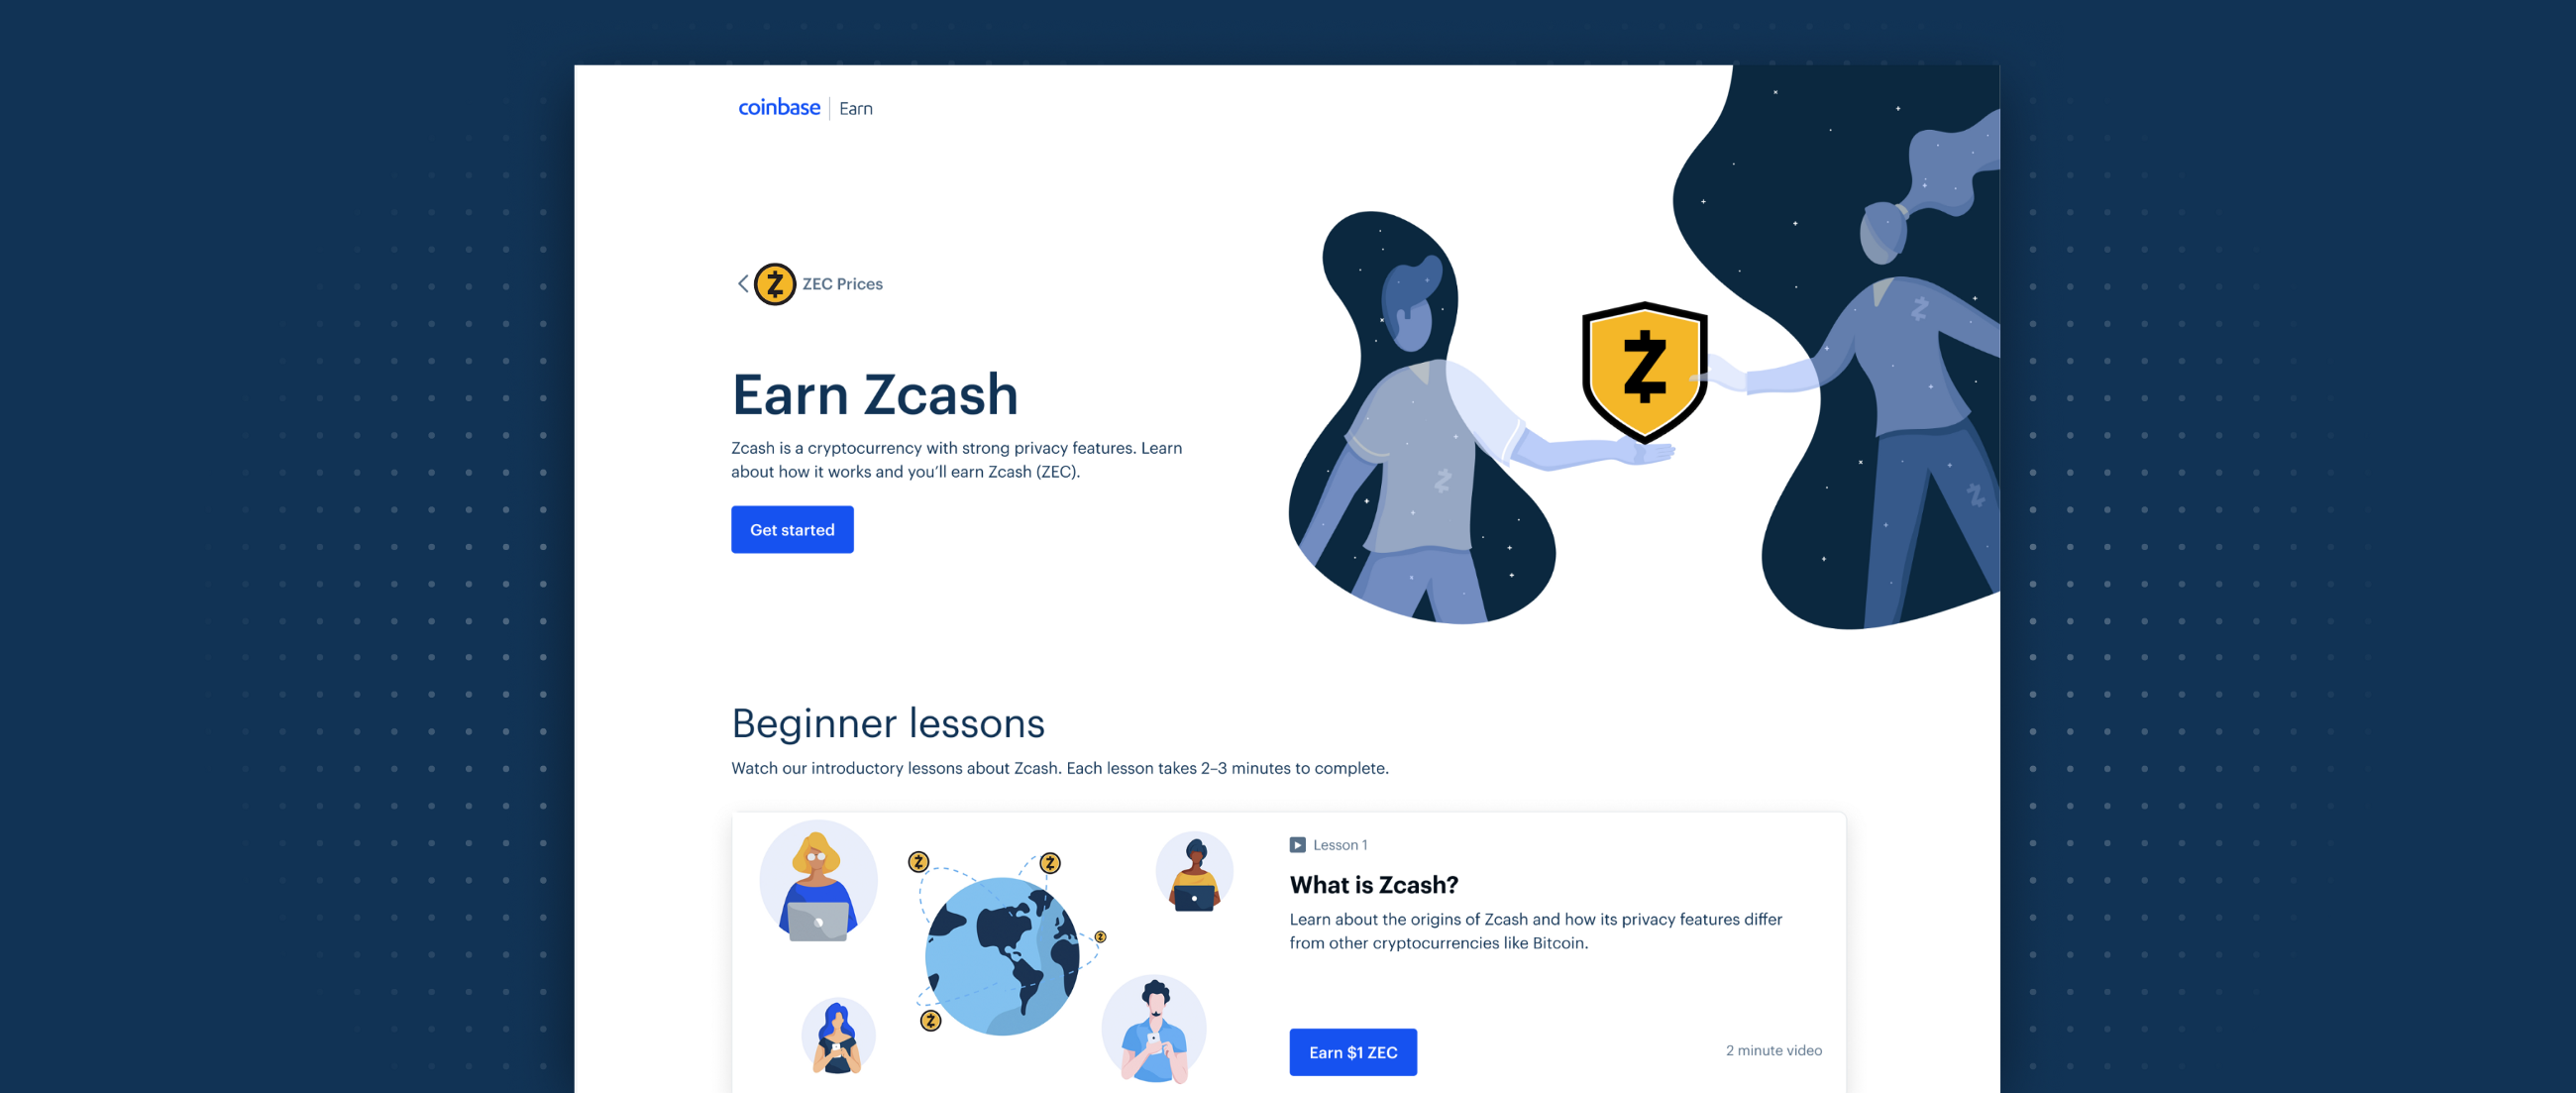 dbbfa92ca9 Earn Zcash while learning about blockchain privacy – The Coinbase Blog